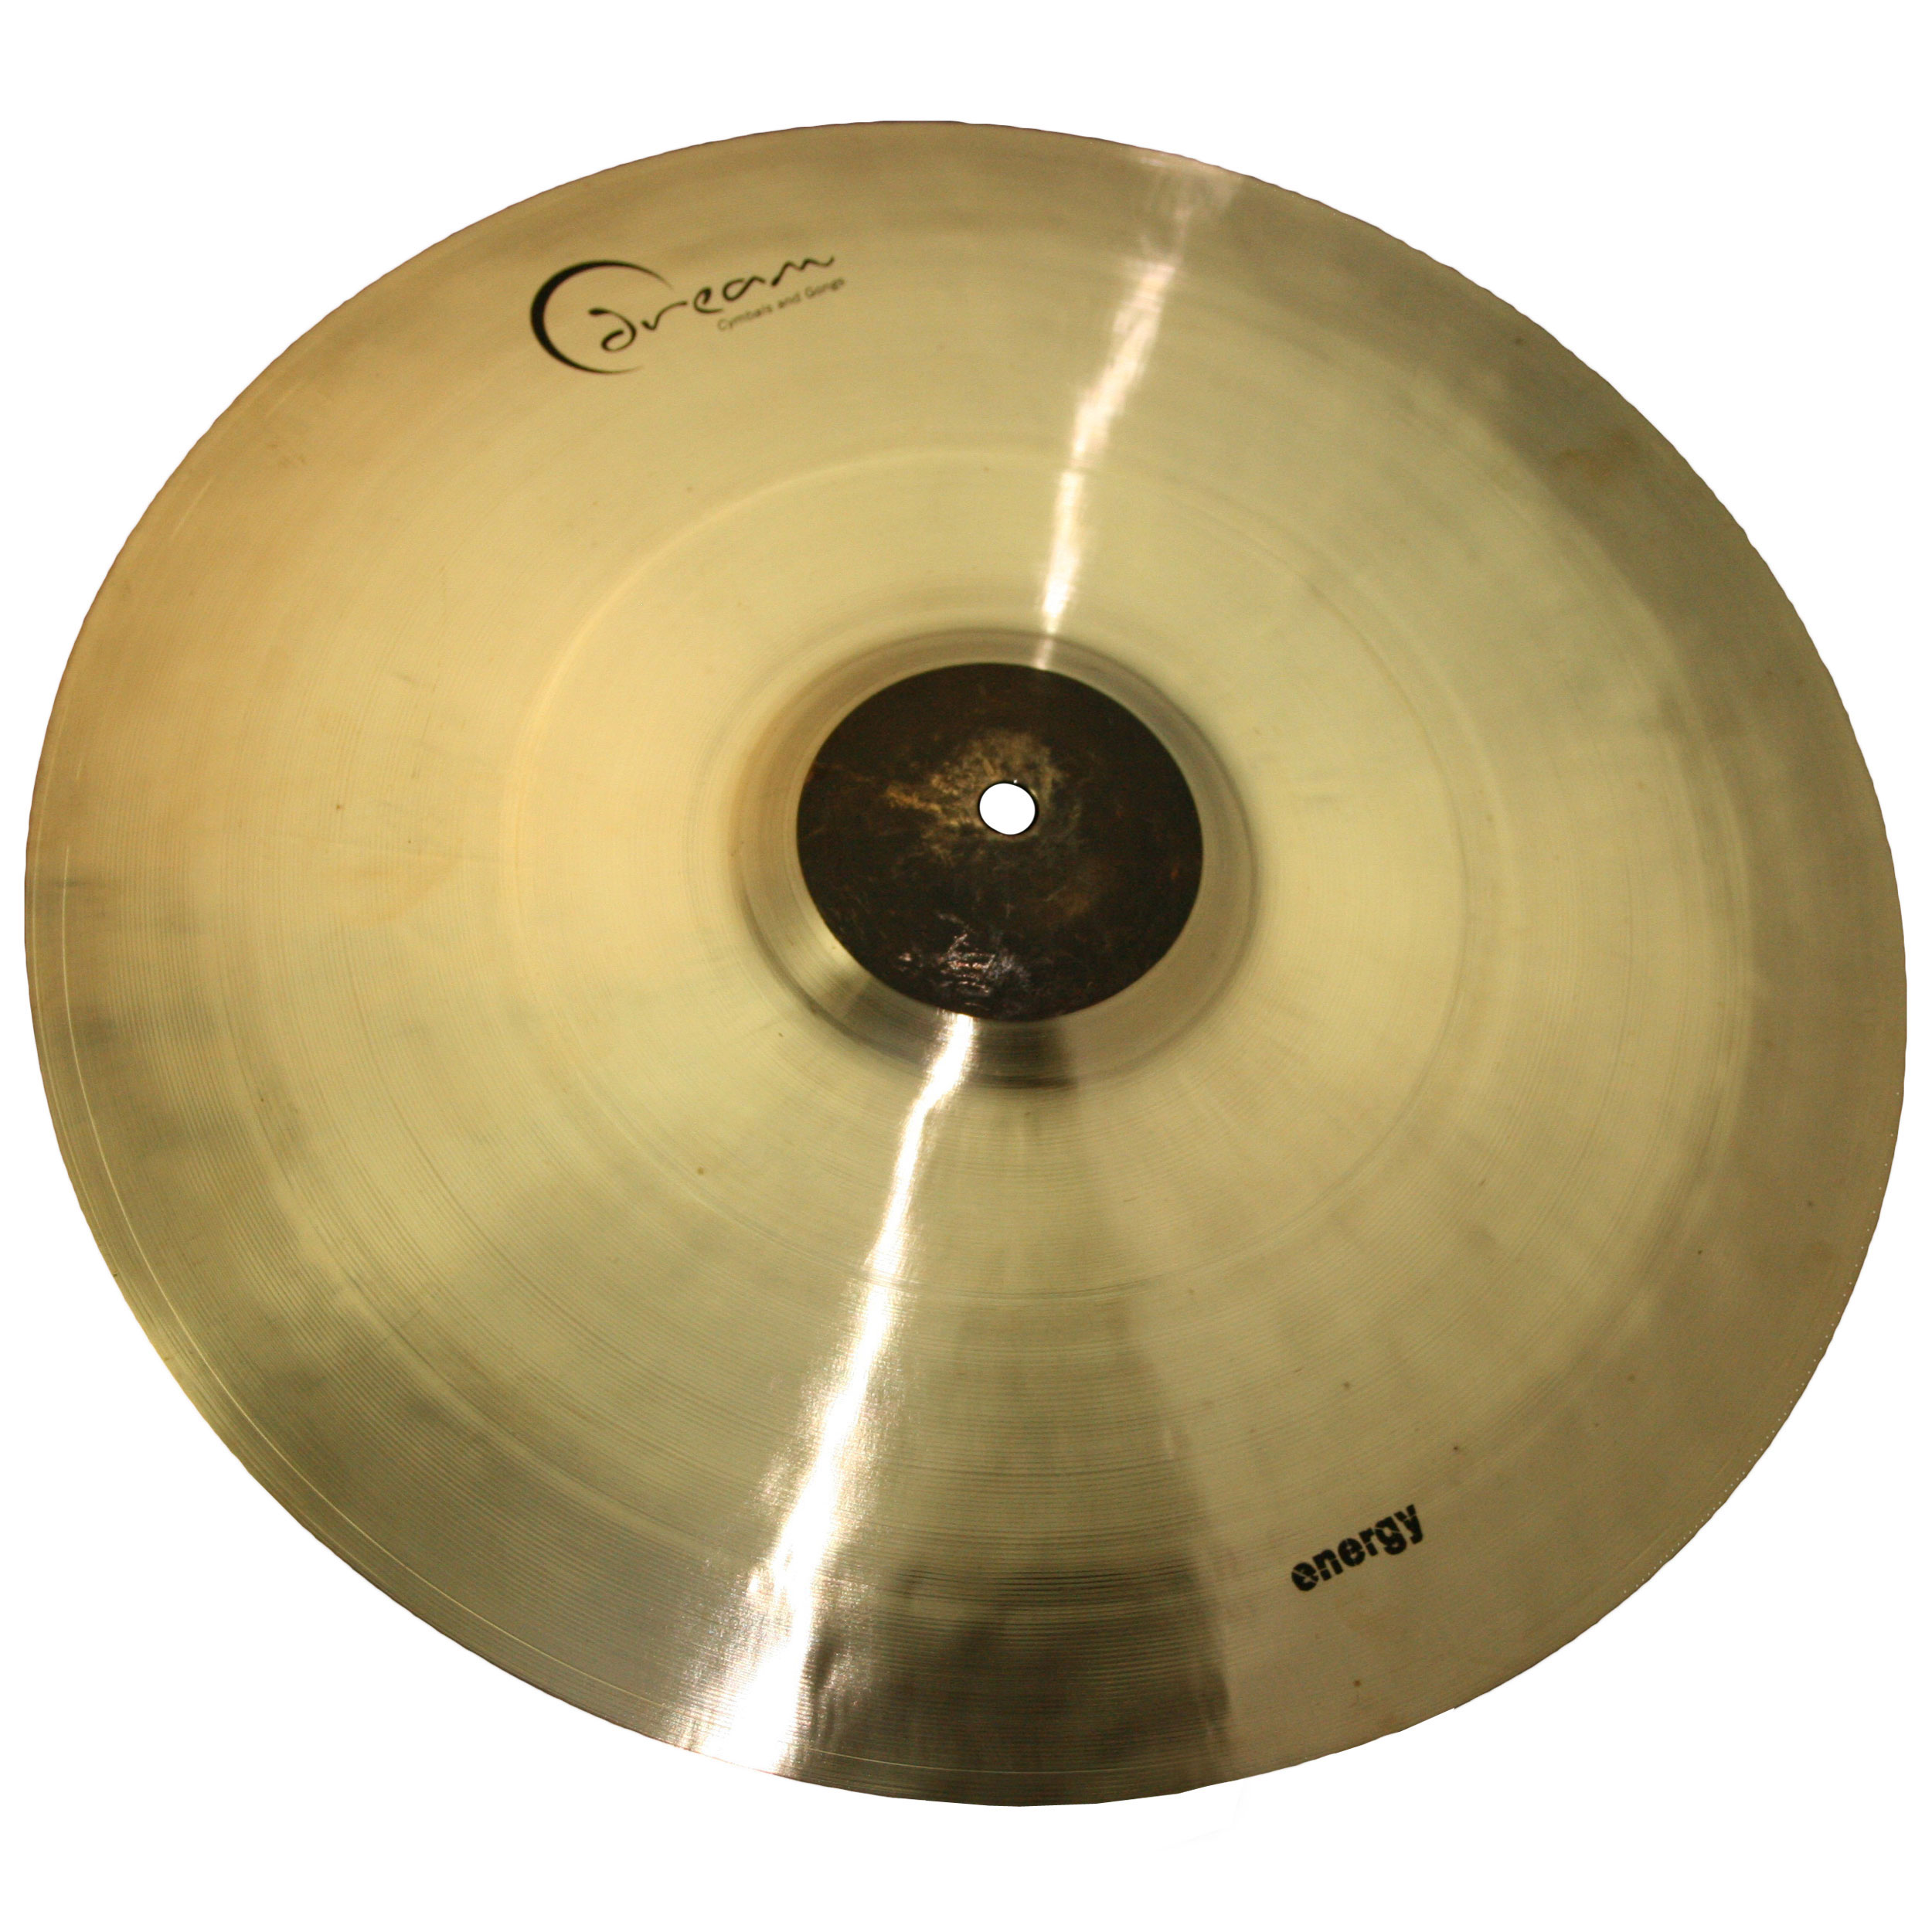 "Dream 16"" Energy Crash Cymbal"